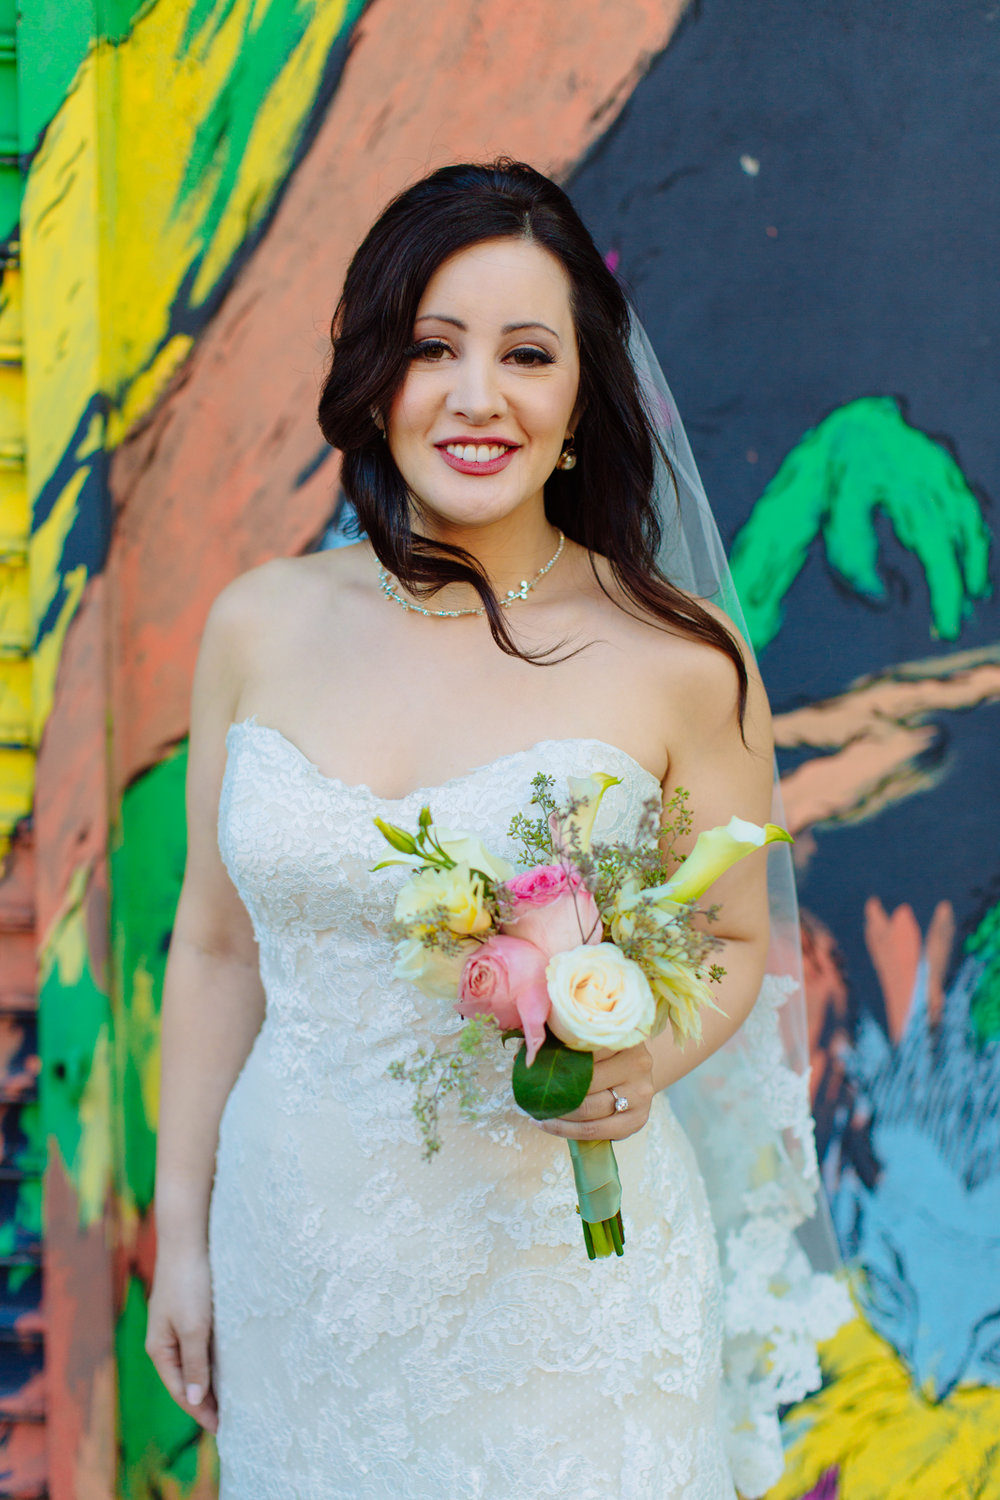 NYC Wedding Photography Lofts at Prince Brooklyn NYC Photographer Boris Zaretsky _B2C0596.jpg